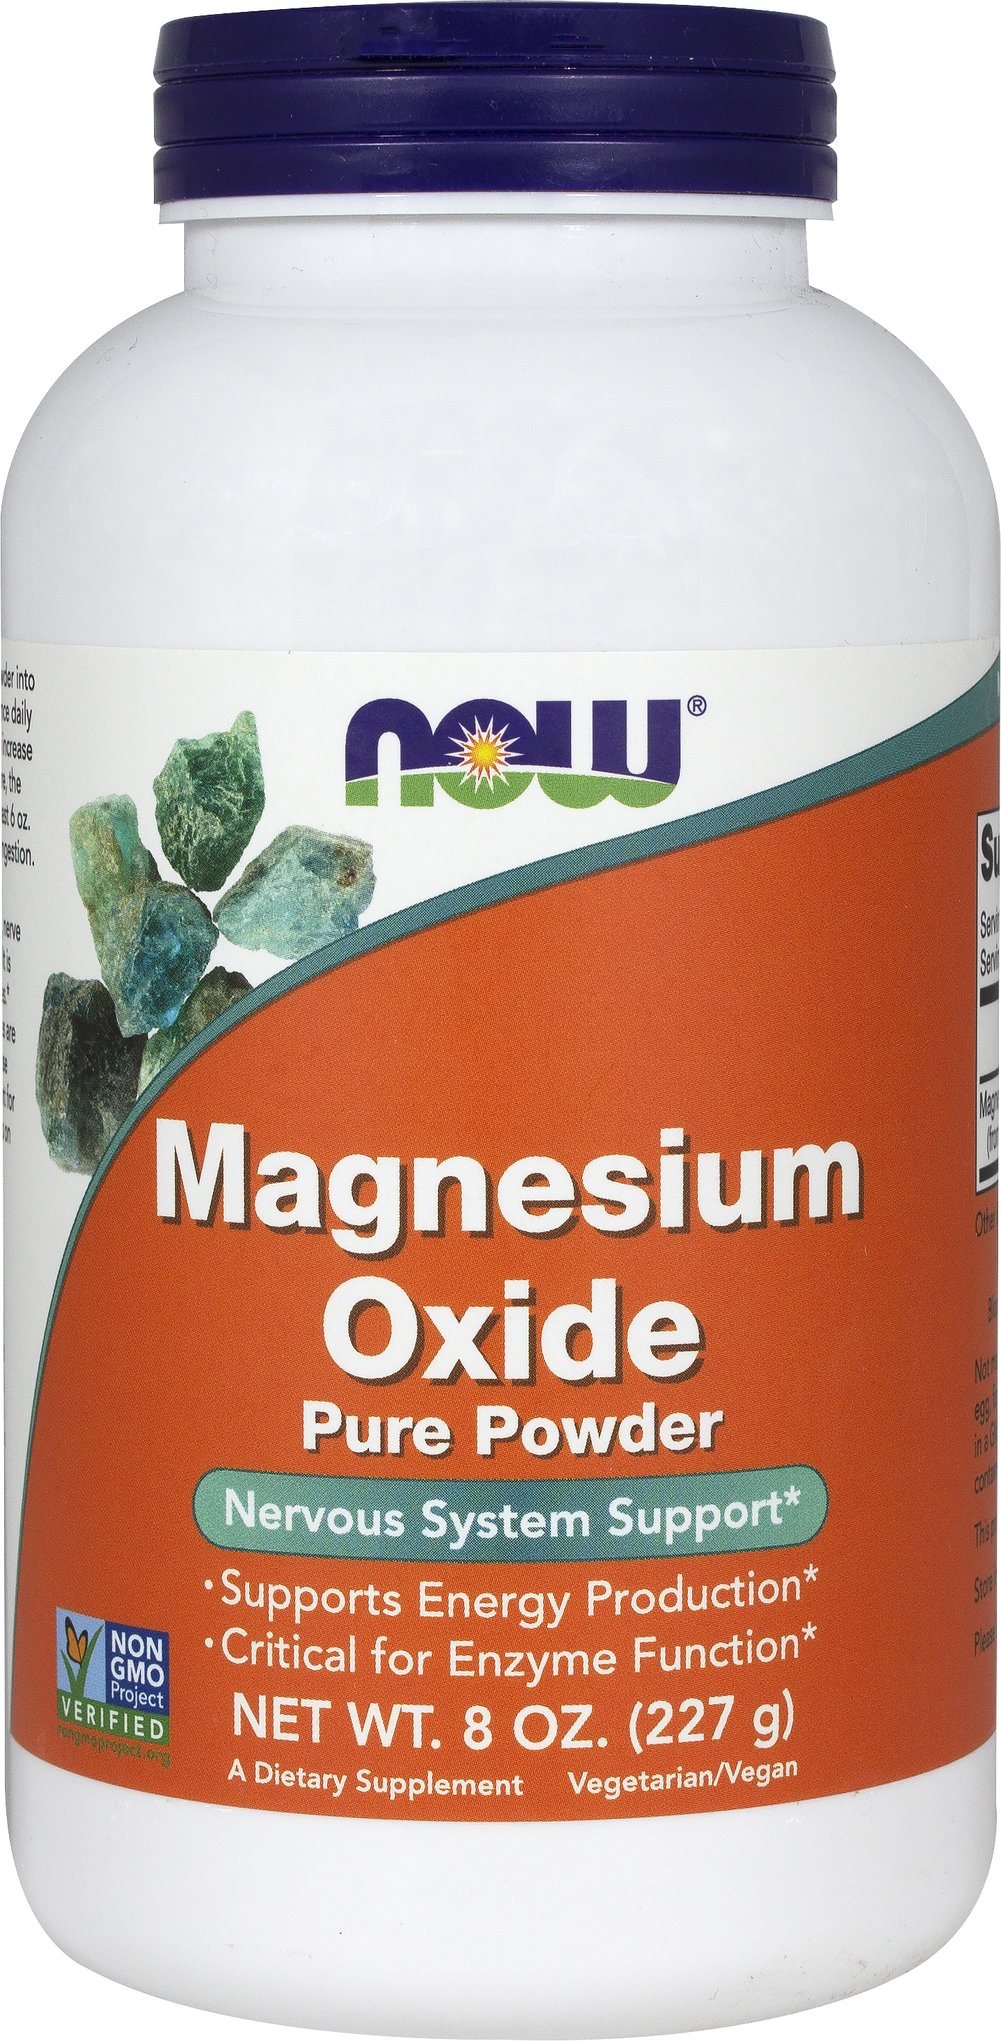 Magnesium Oxide Powder  8 oz Powder 400 mg $5.99